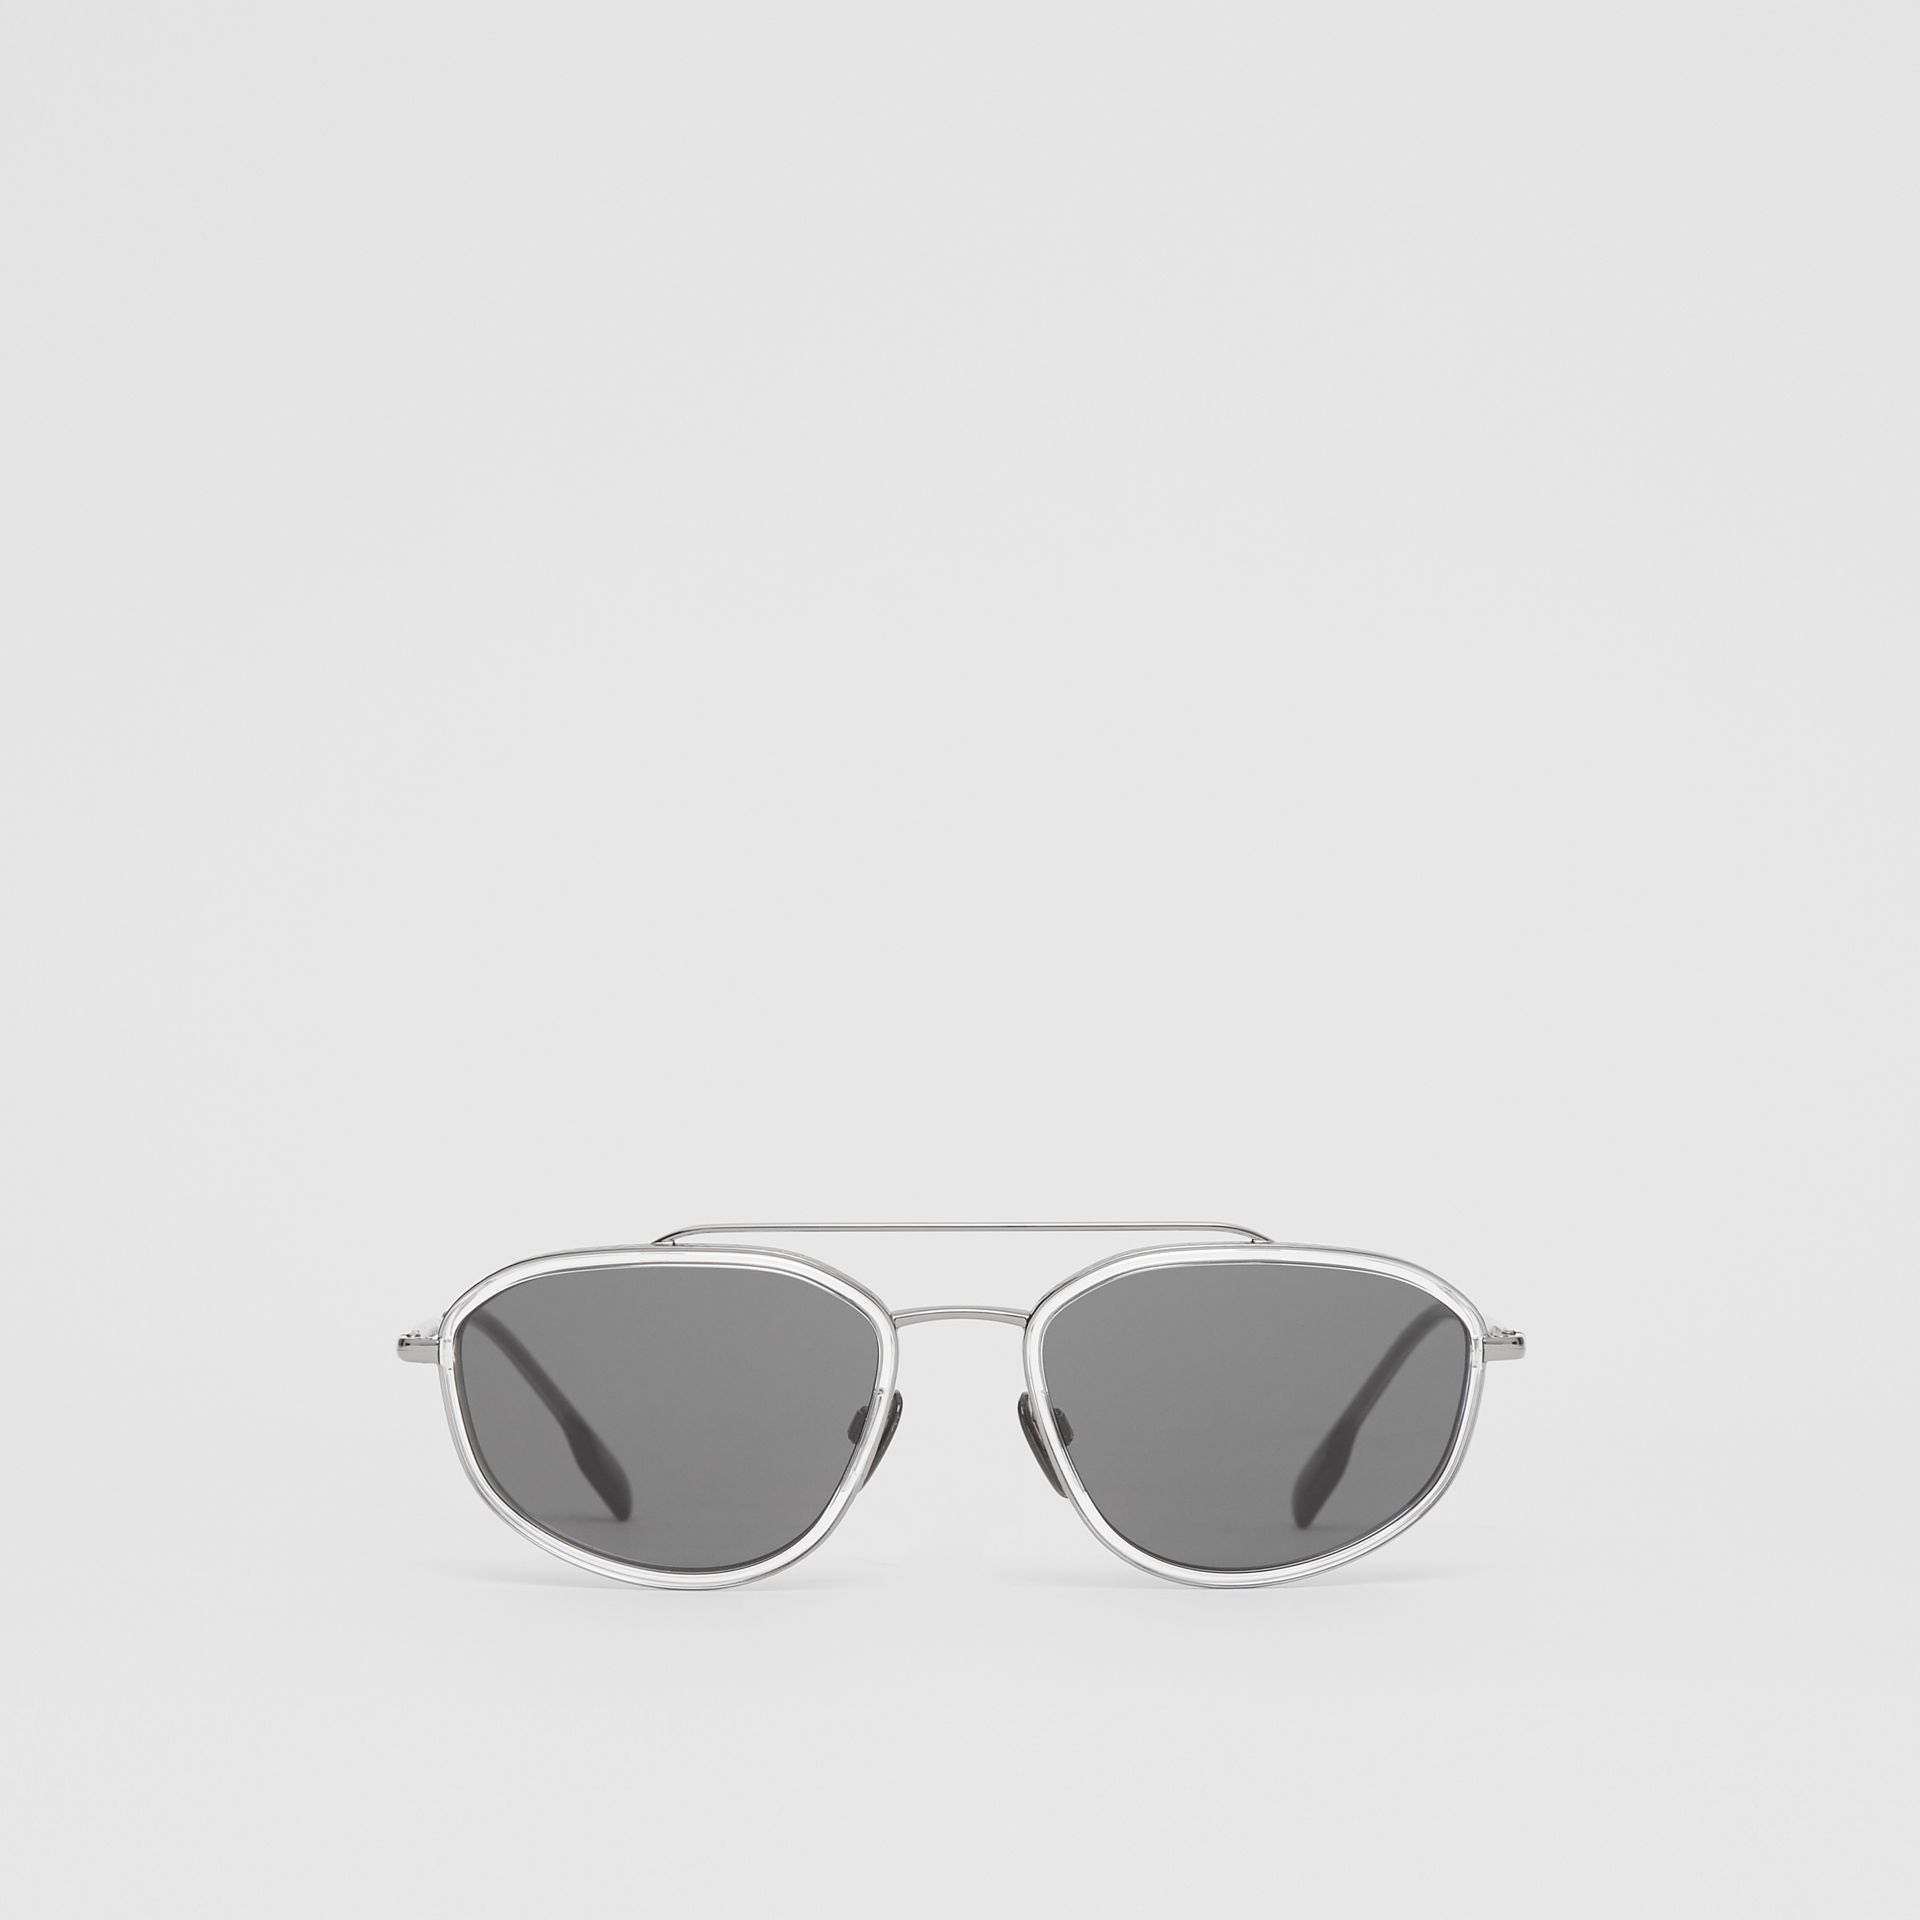 Geometric Navigator Sunglasses in Gunmetal Grey - Men | Burberry - gallery image 0